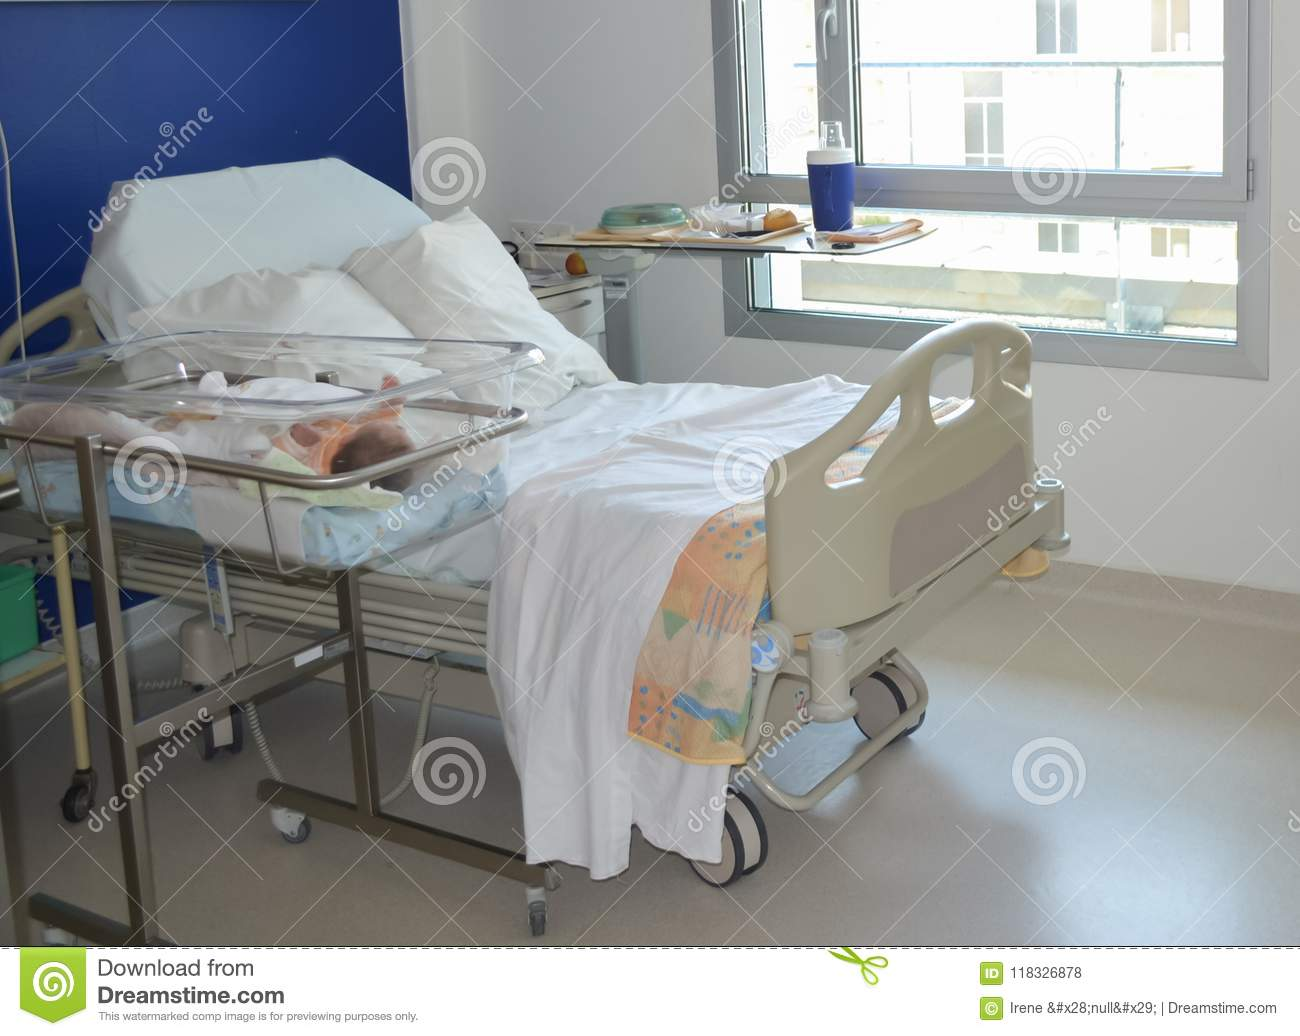 Empty Hospital Bed And Newborn Baby Near The Bed Stock Photo